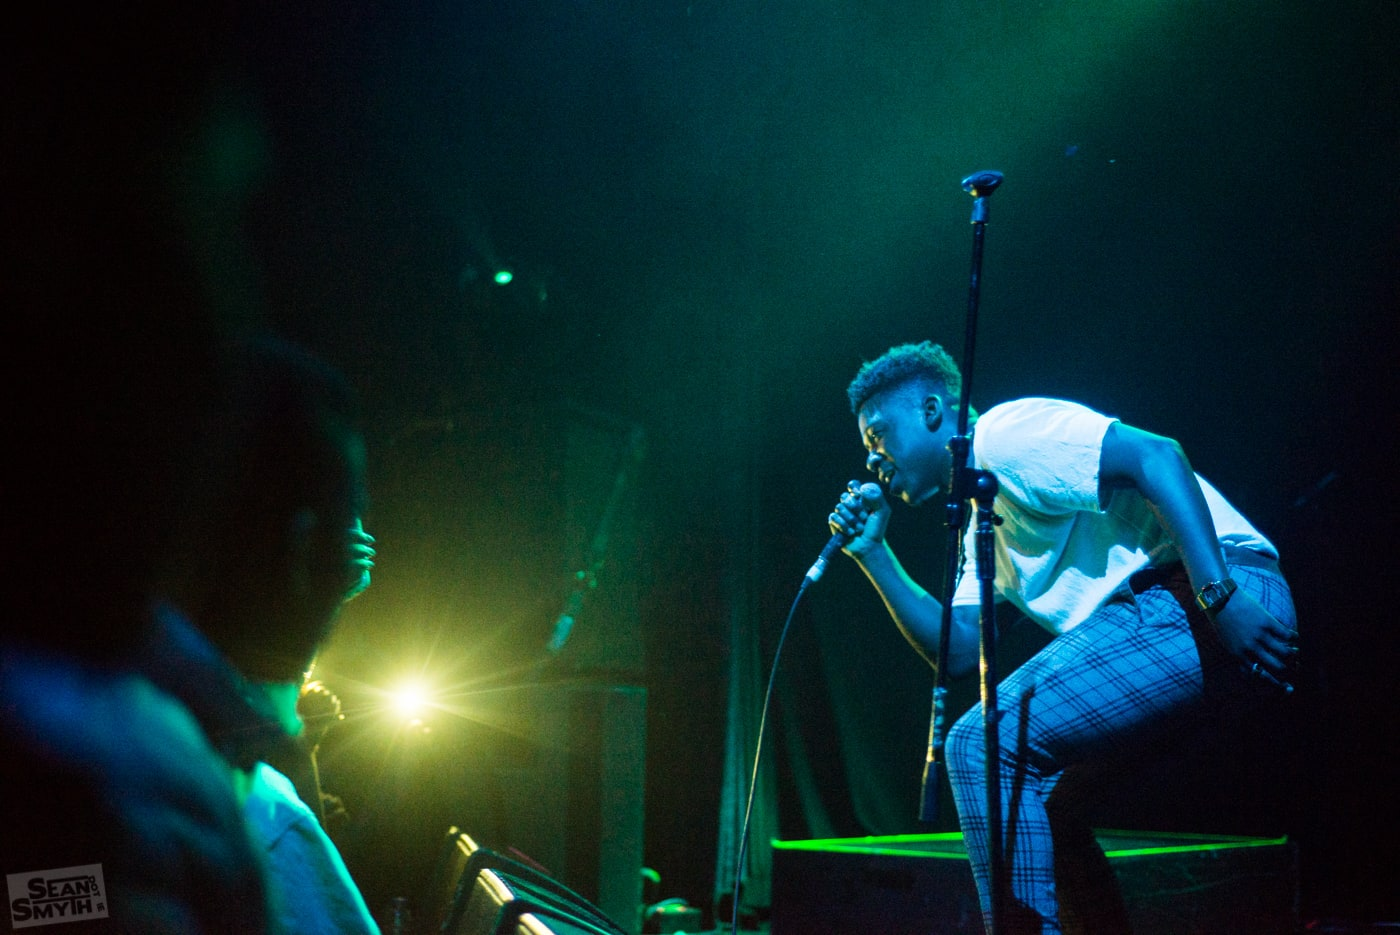 jafaris-at-the-button-factory-by-sean-smyth-28-9-16-3-of-8